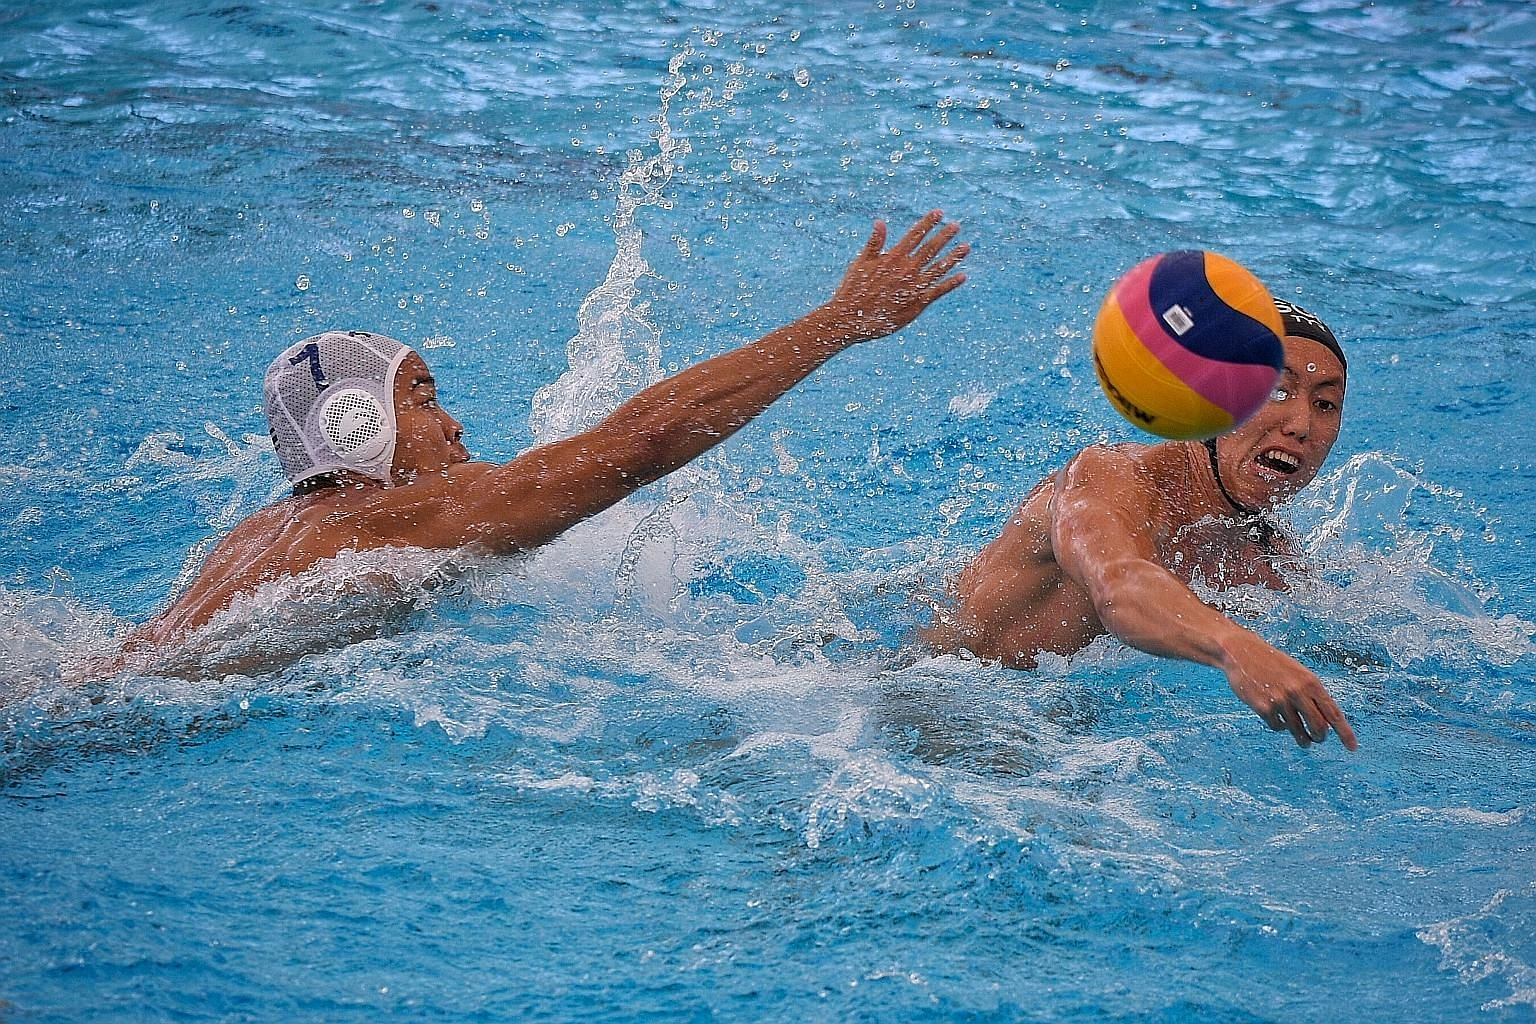 Koh Jian Ying (right) taking a shot during the match against Thailand at the National Aquatic Centre yesterday. Singapore won 13-2.